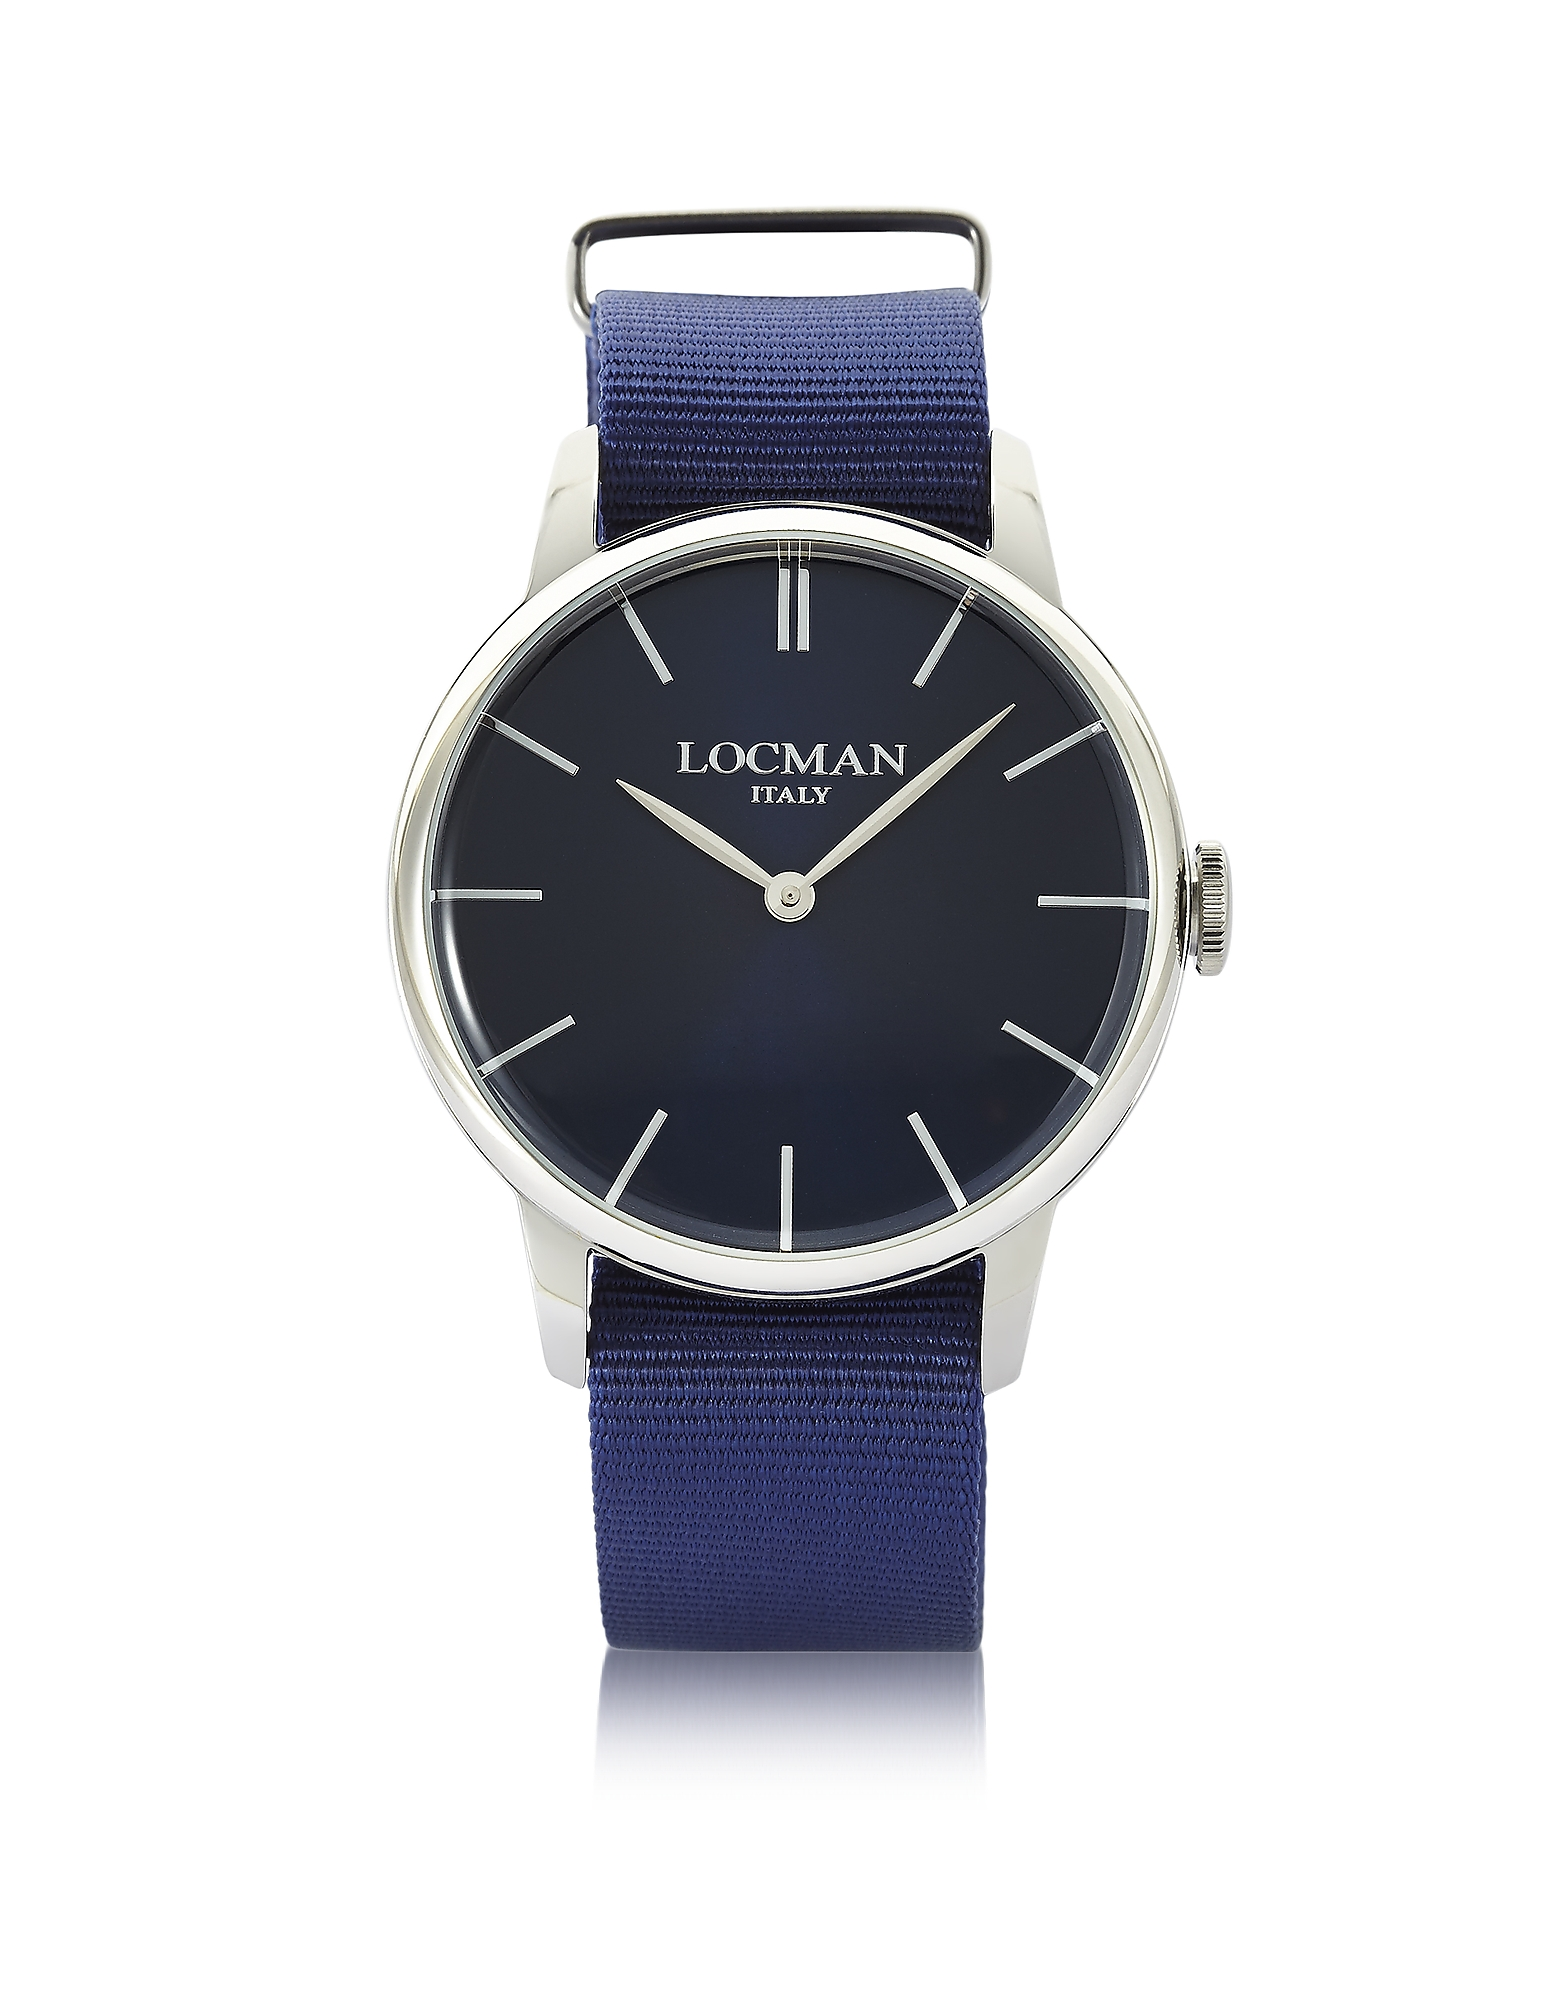 Locman Men's Watches, 1960 Stainless Steel Men's Watch w/Blue Canvas Strap